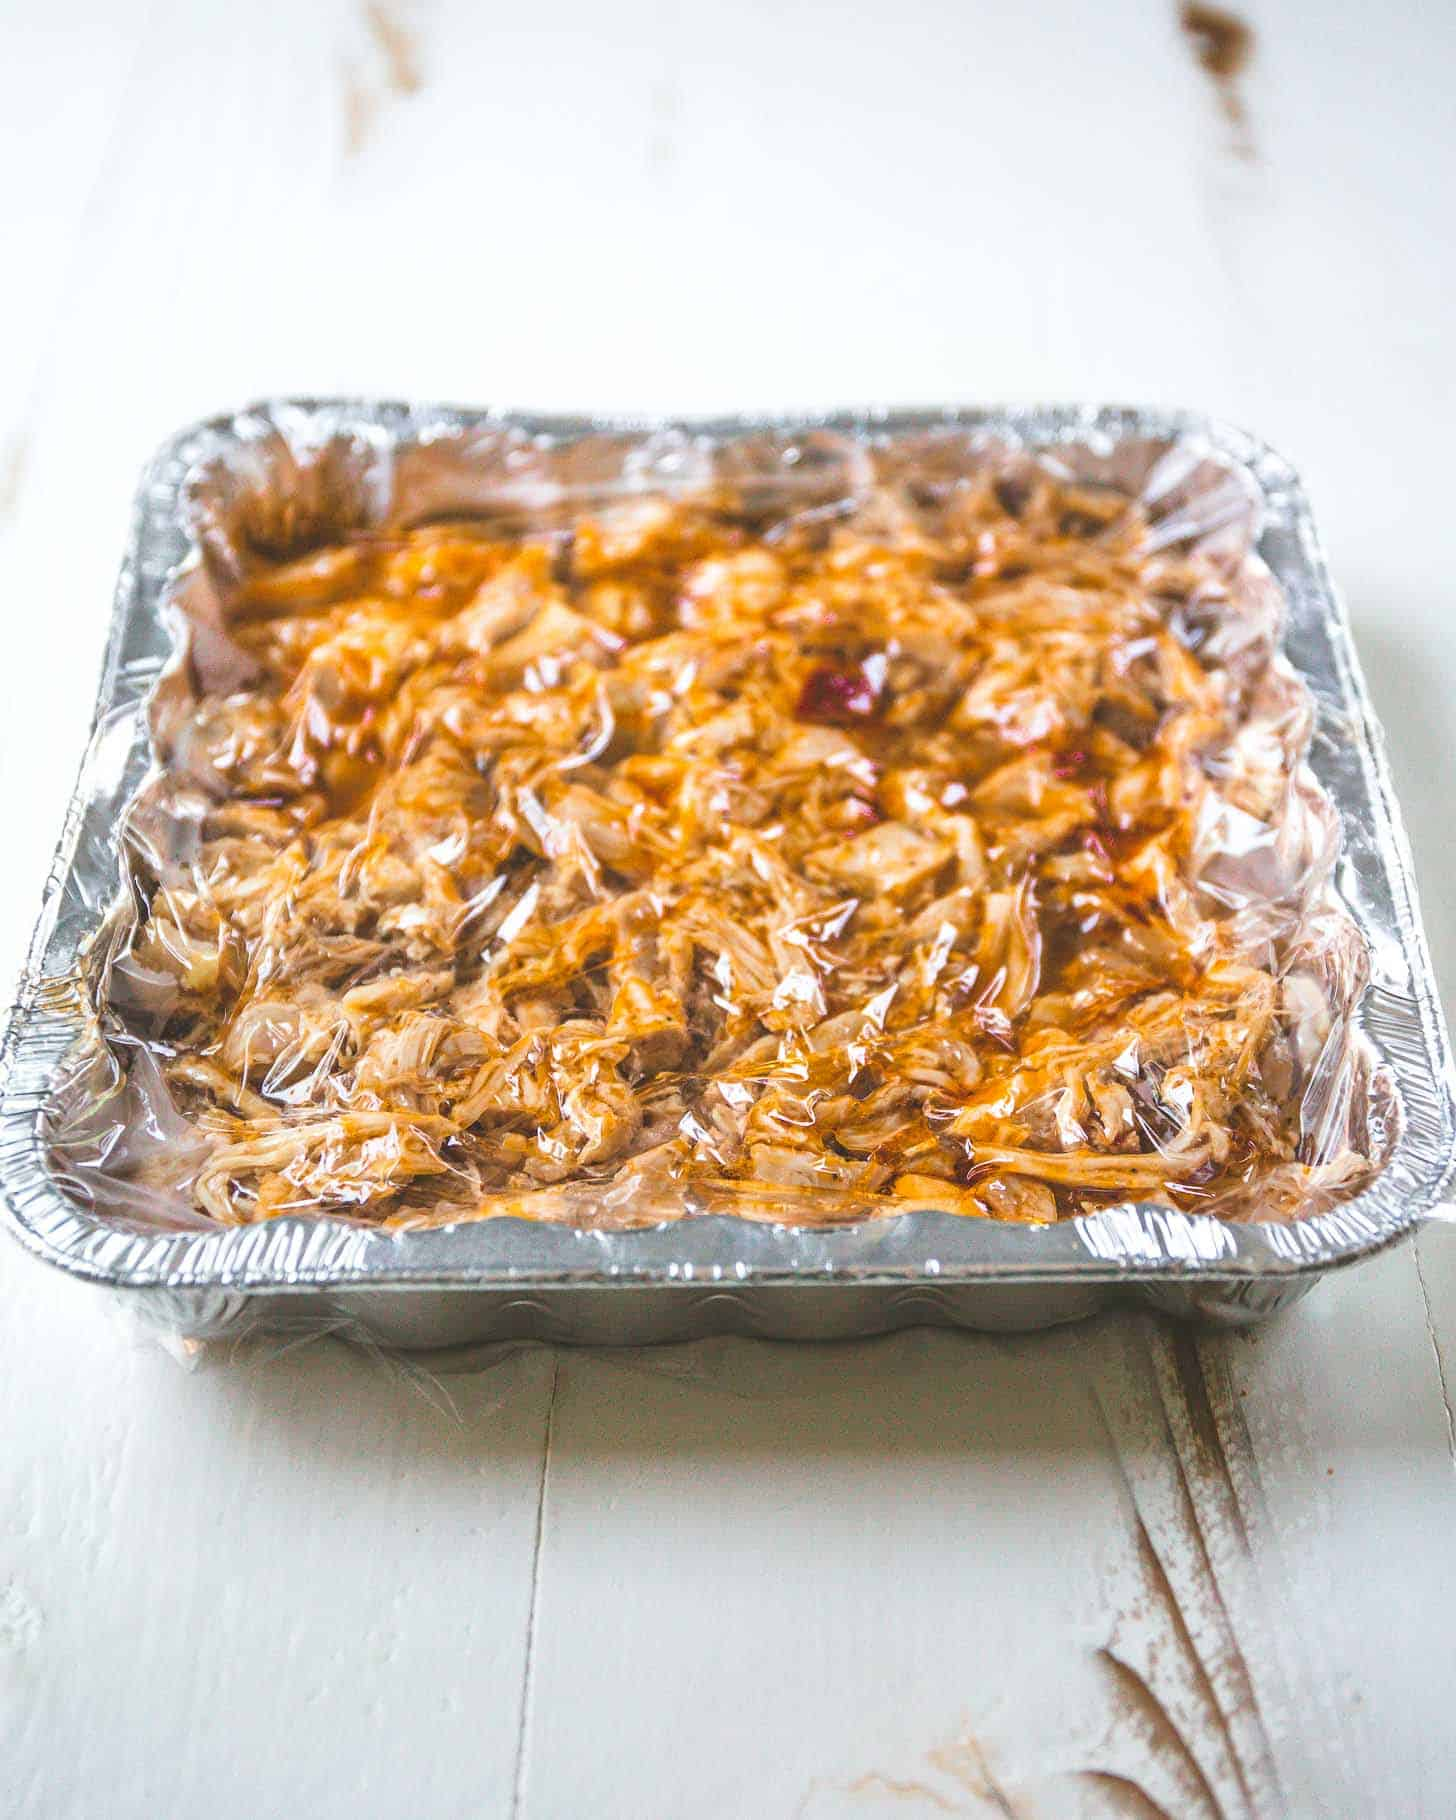 BBQ Pulled Chicken in a silver baking pan topped with plastic wrap